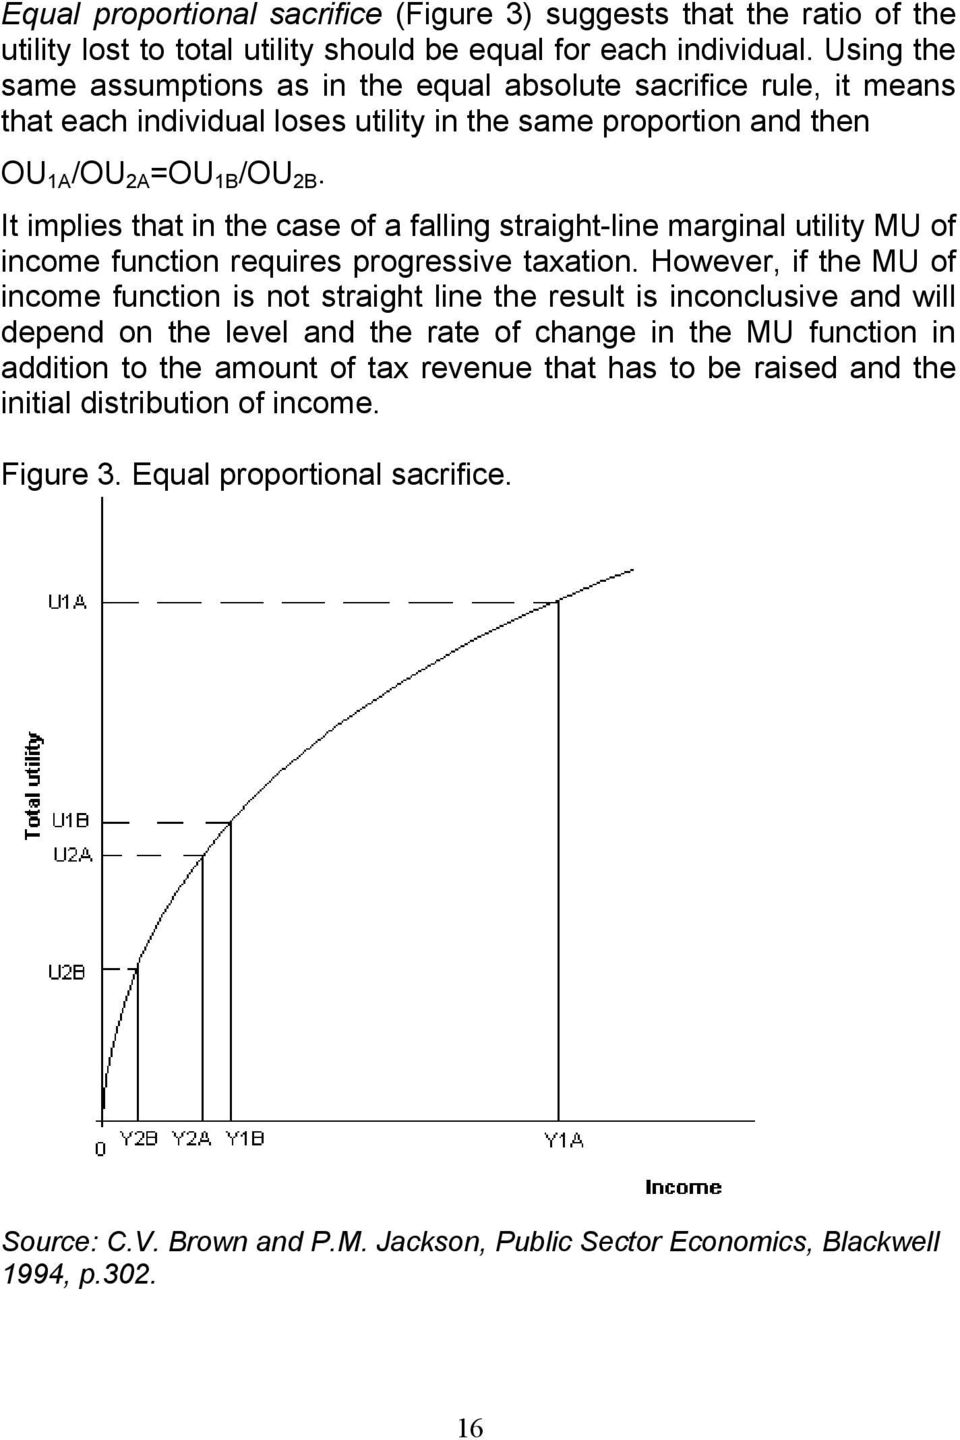 It implies that in the case of a falling straight-line marginal utility MU of income function requires progressive taxation.